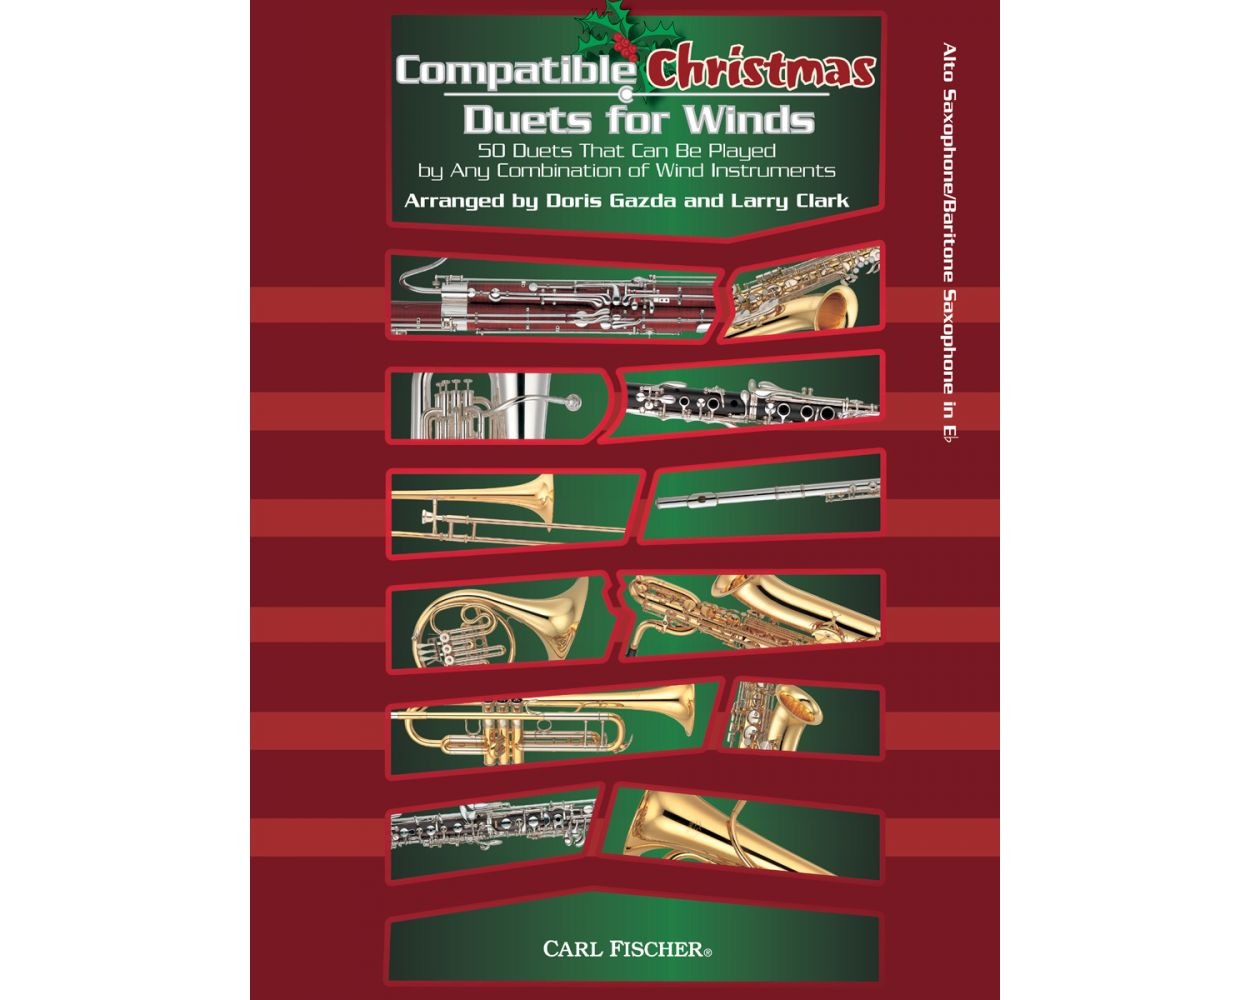 Compatible Christmas Duets for Winds 50